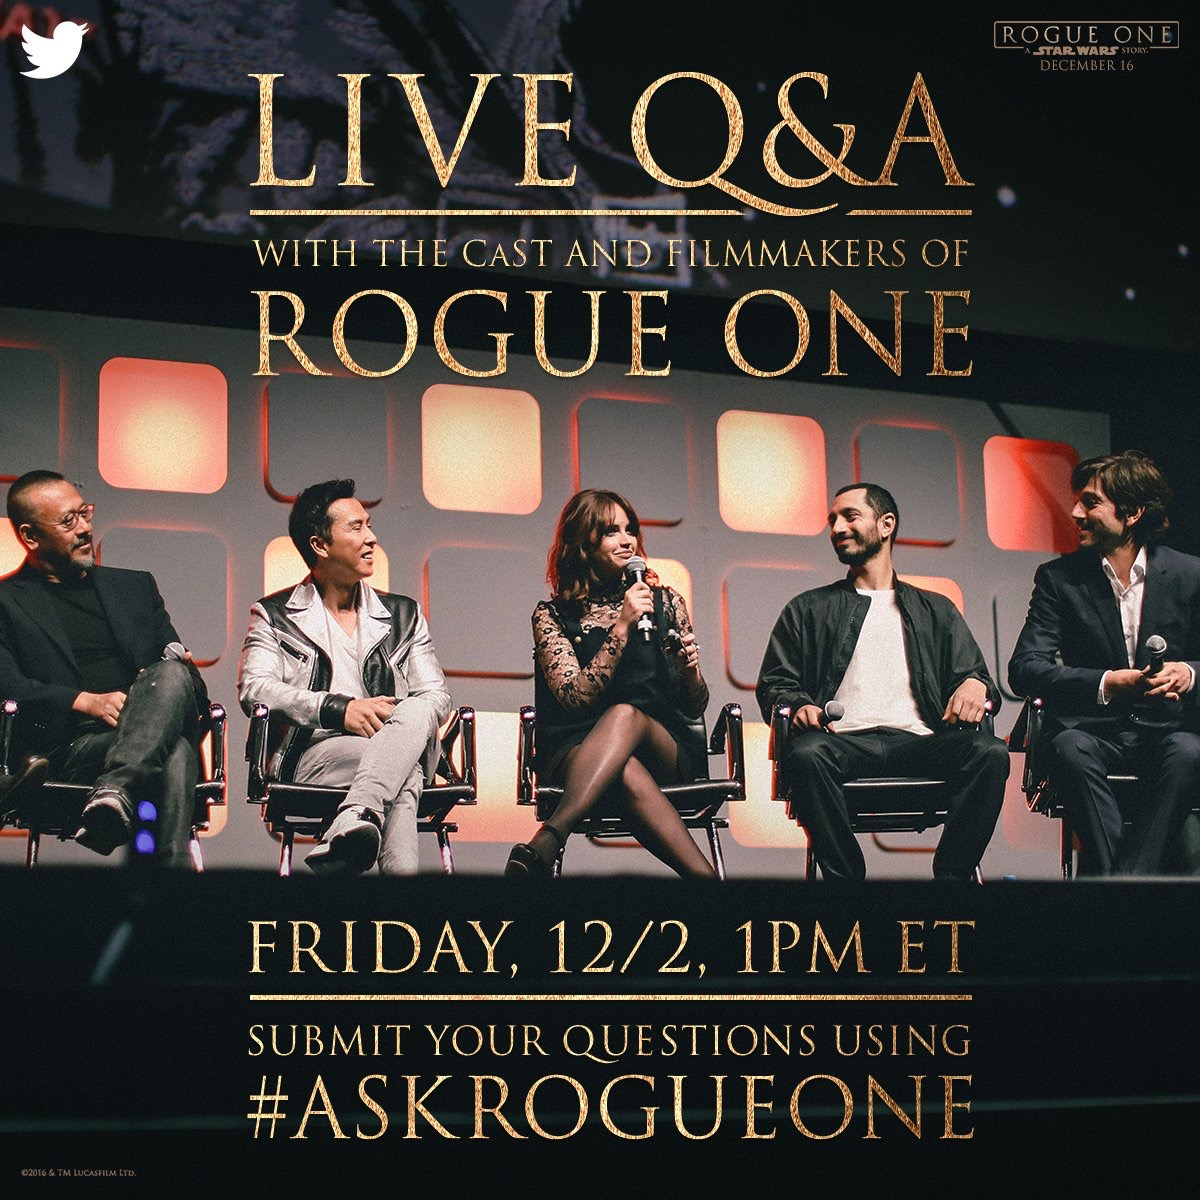 Twitter Announces Live Streaming Event with Disney & People for Rogue One